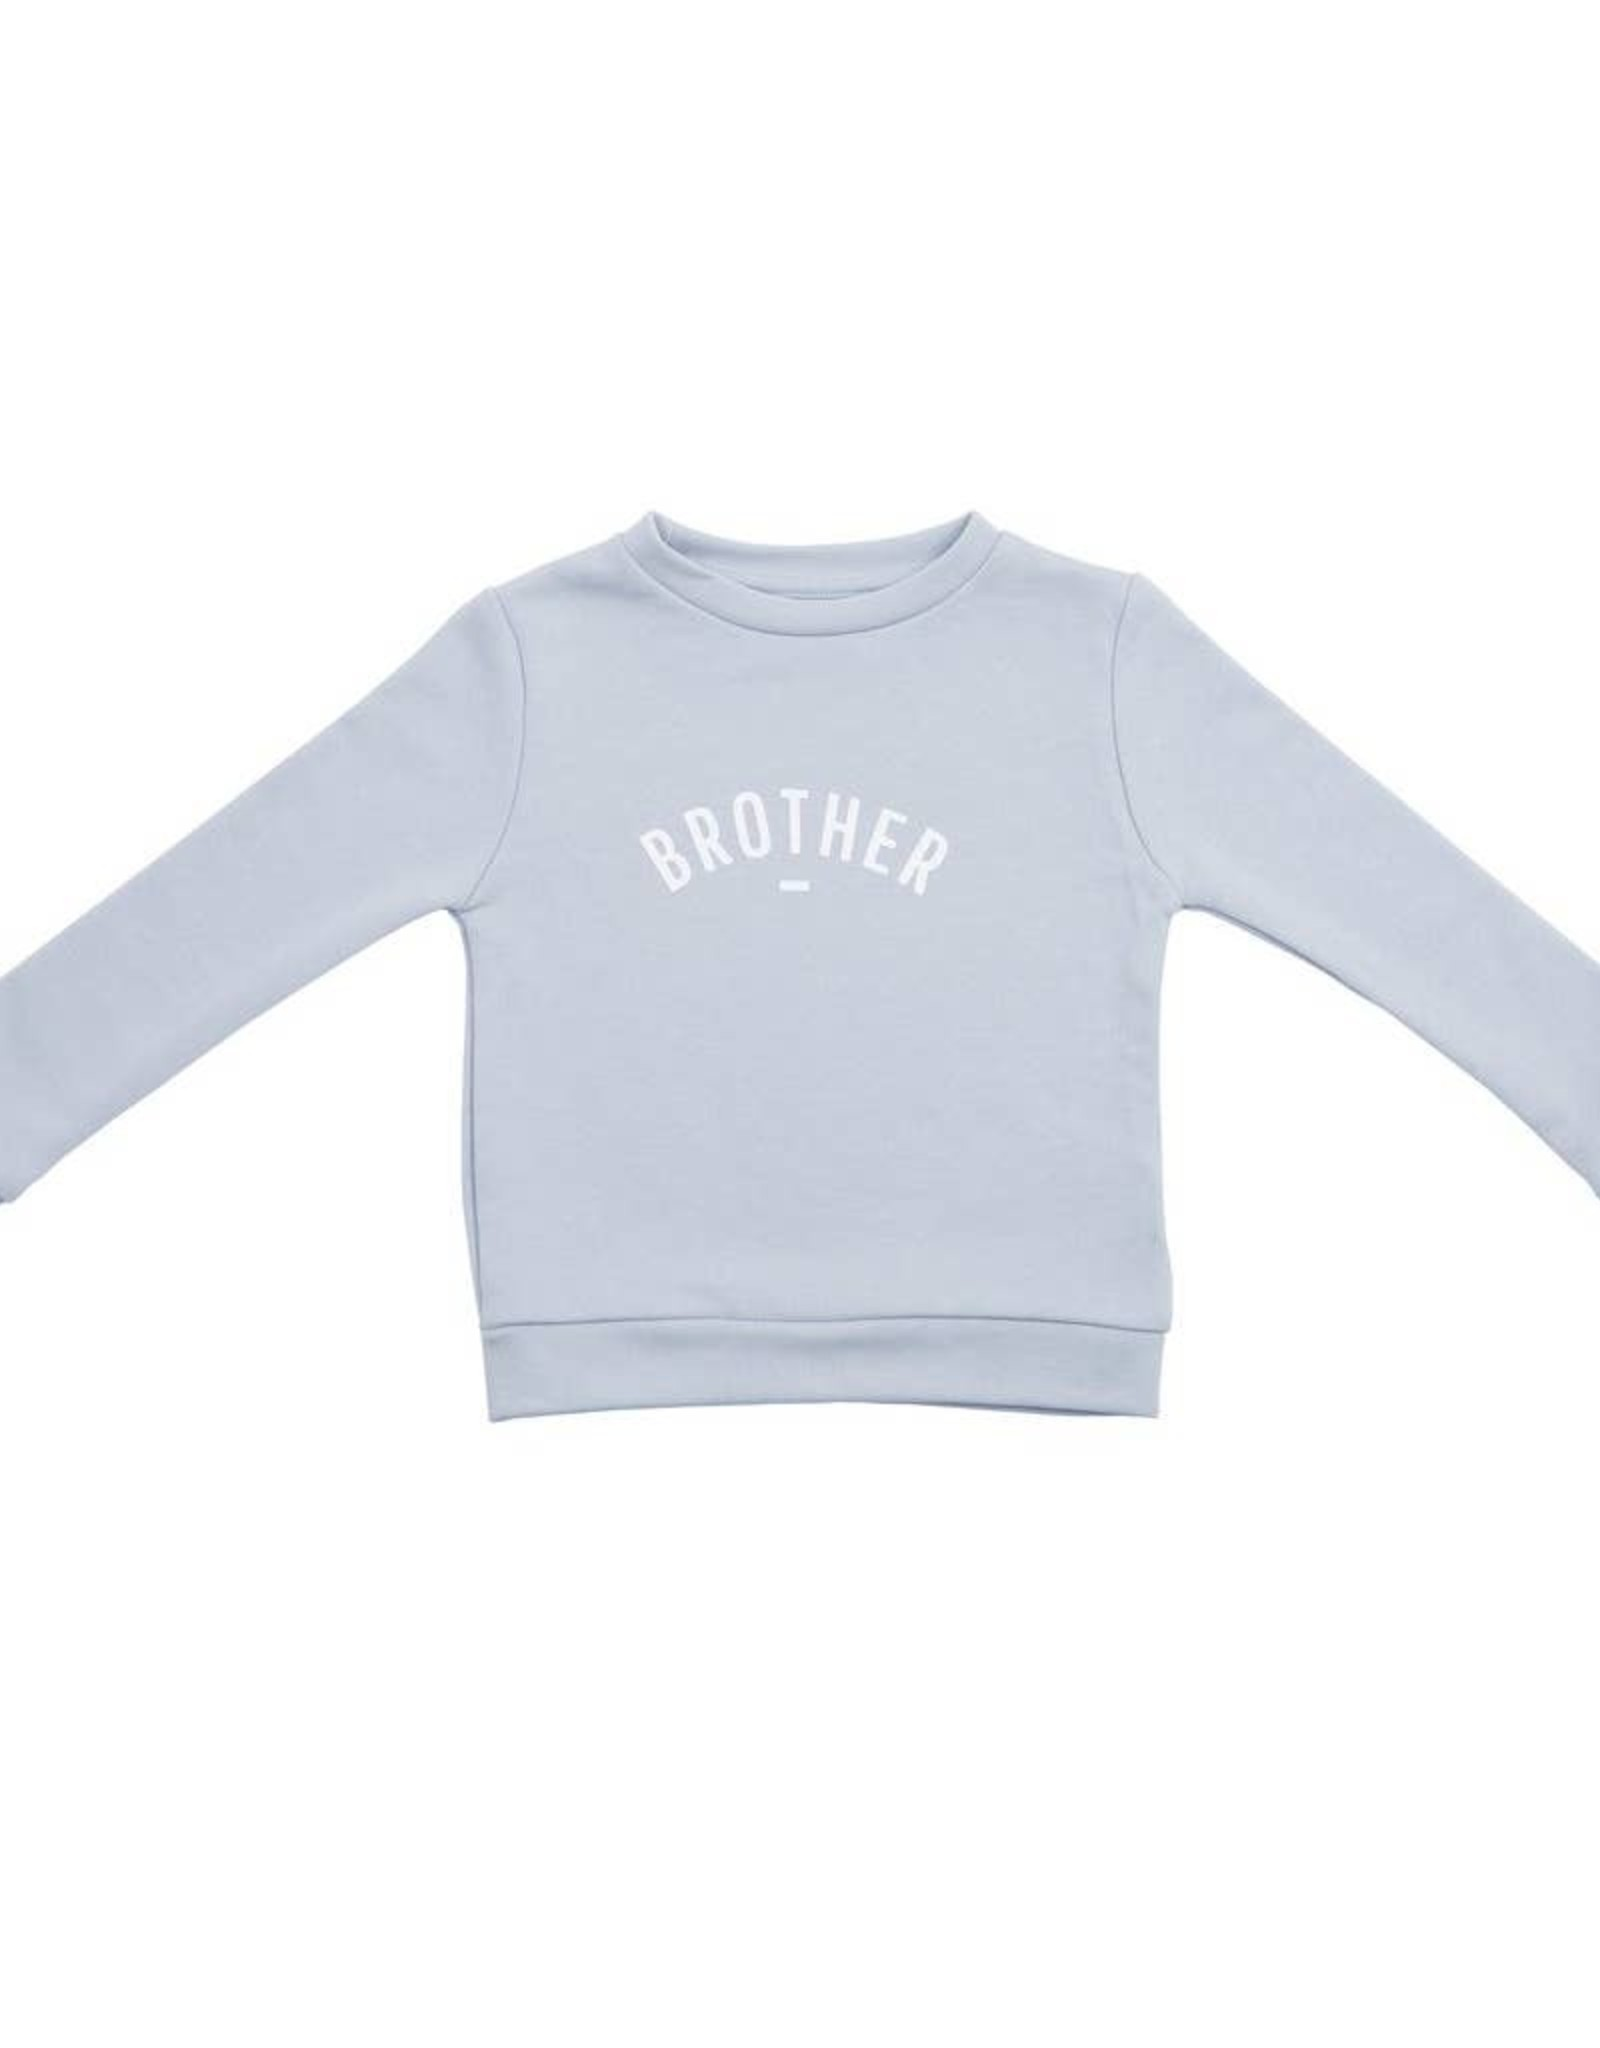 Bob & blossom Mouse Grey Brother Sweatshirt